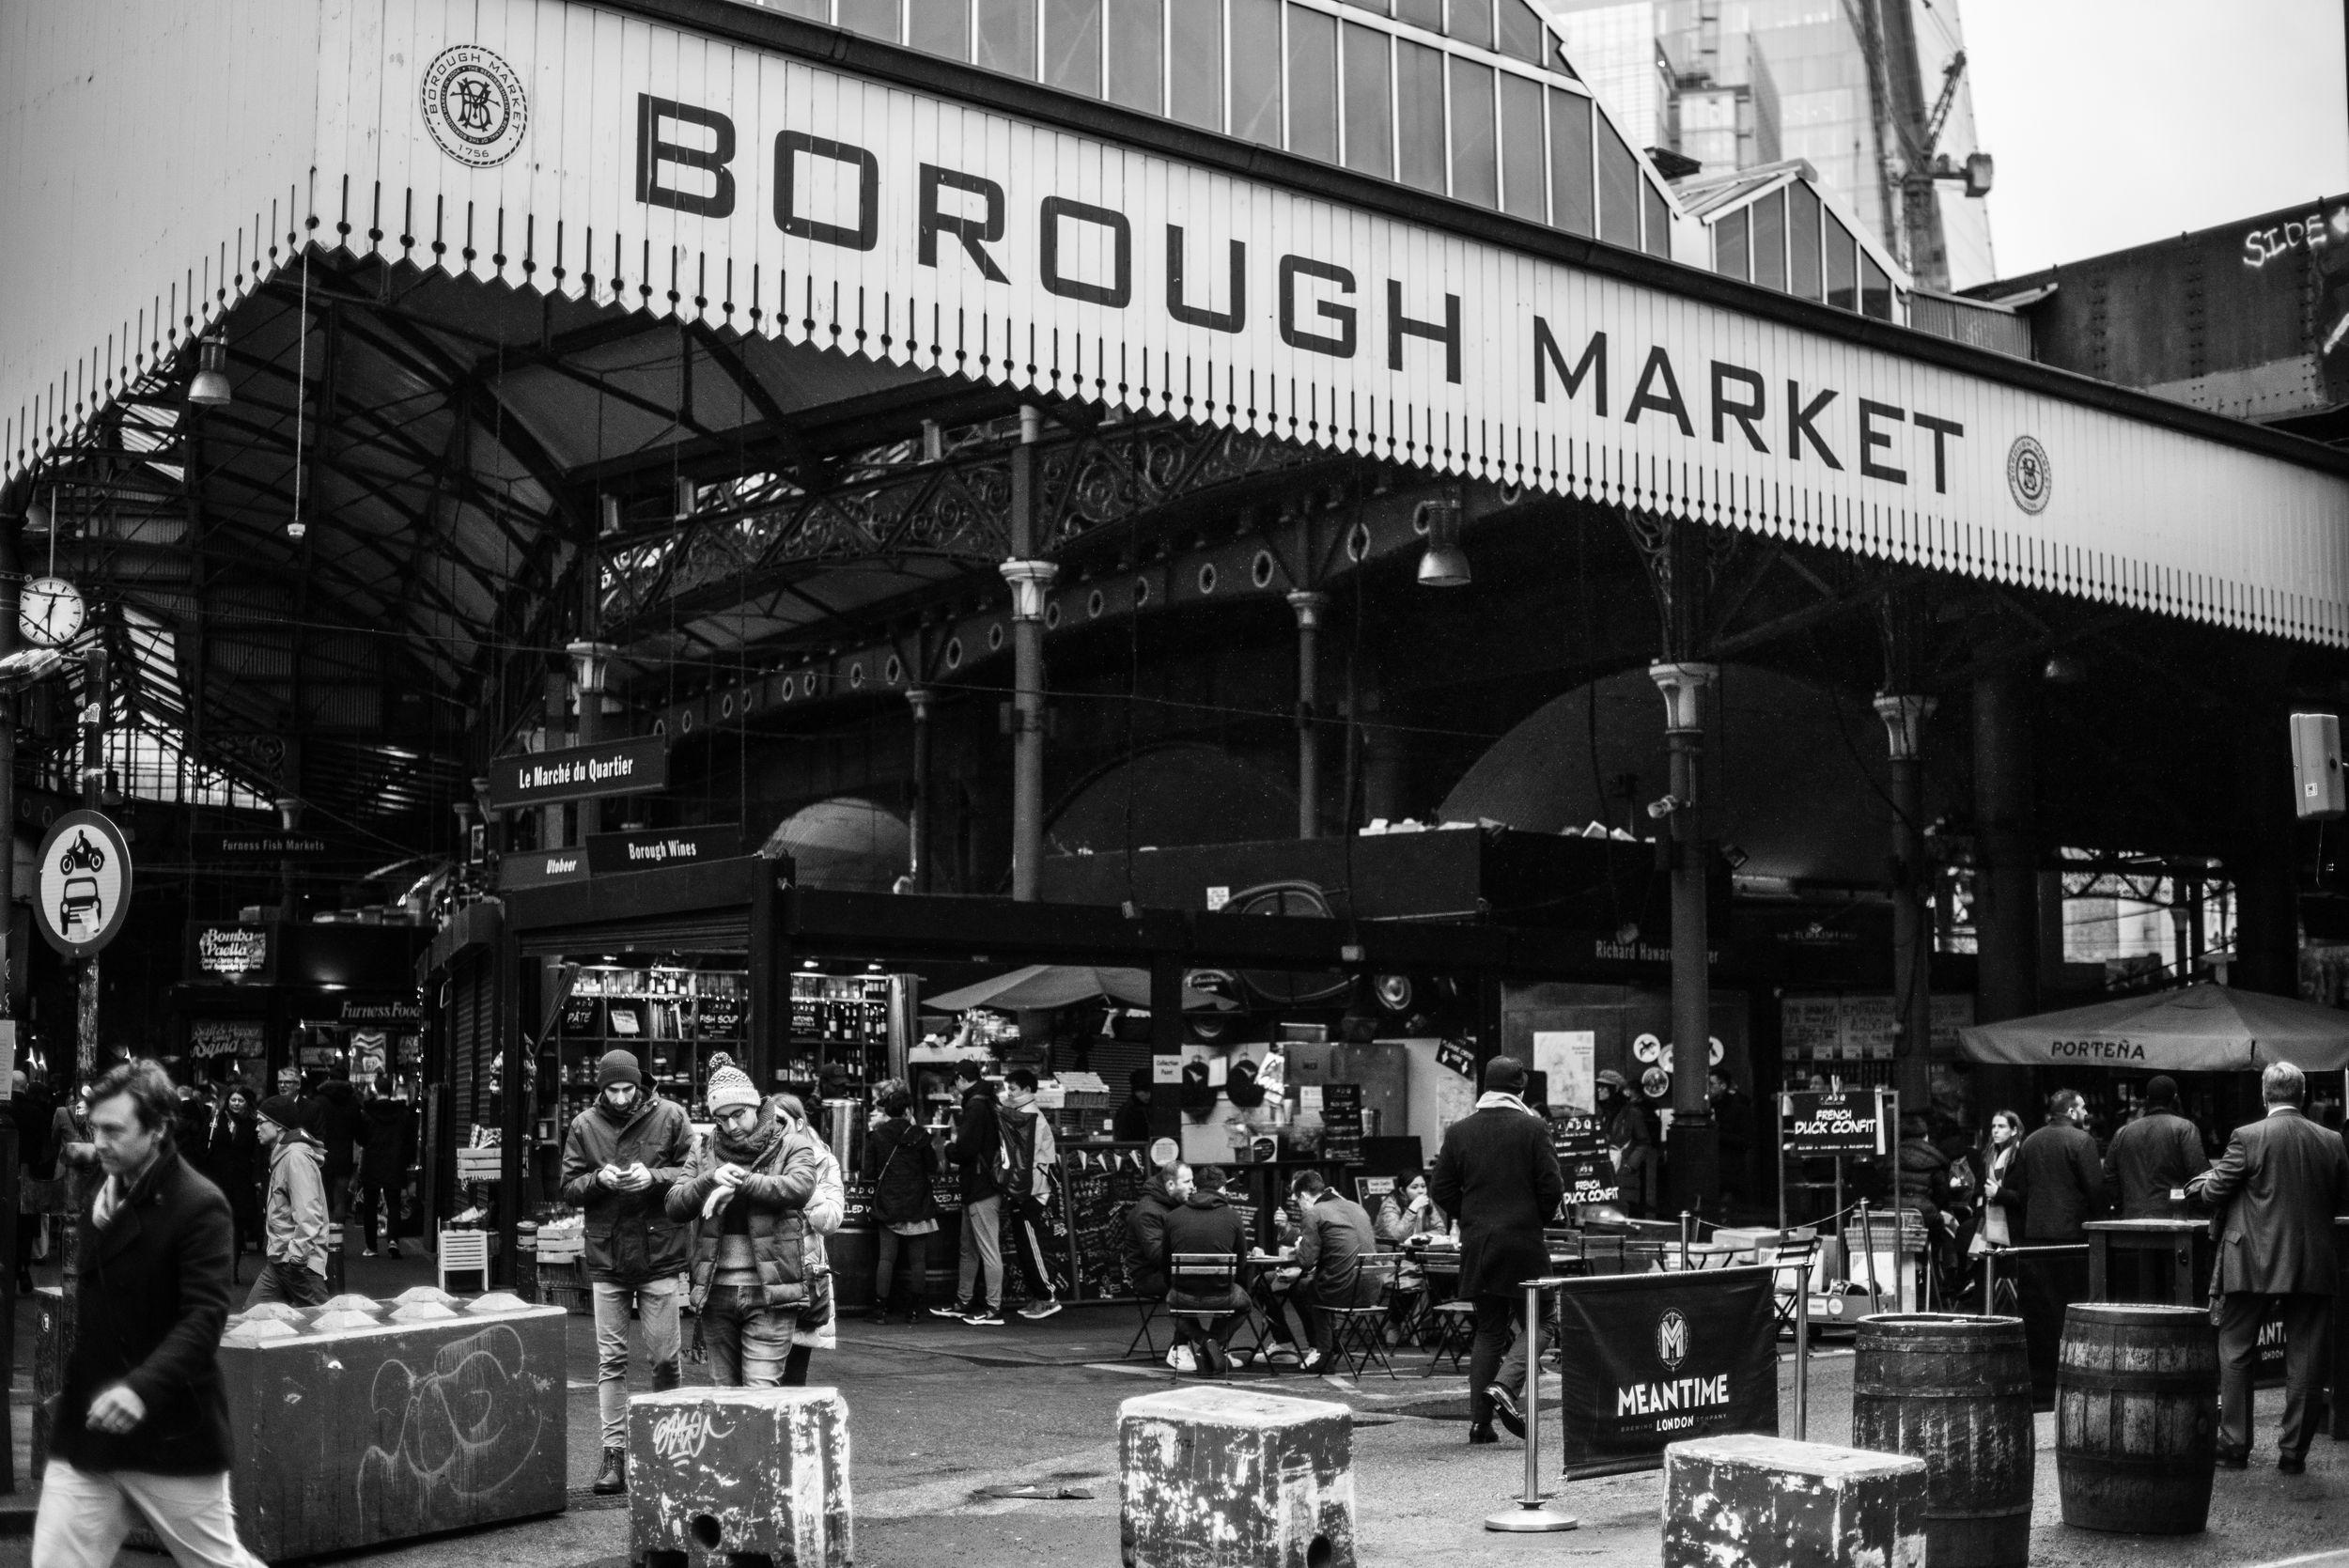 B&W image outside of Borough Market in London